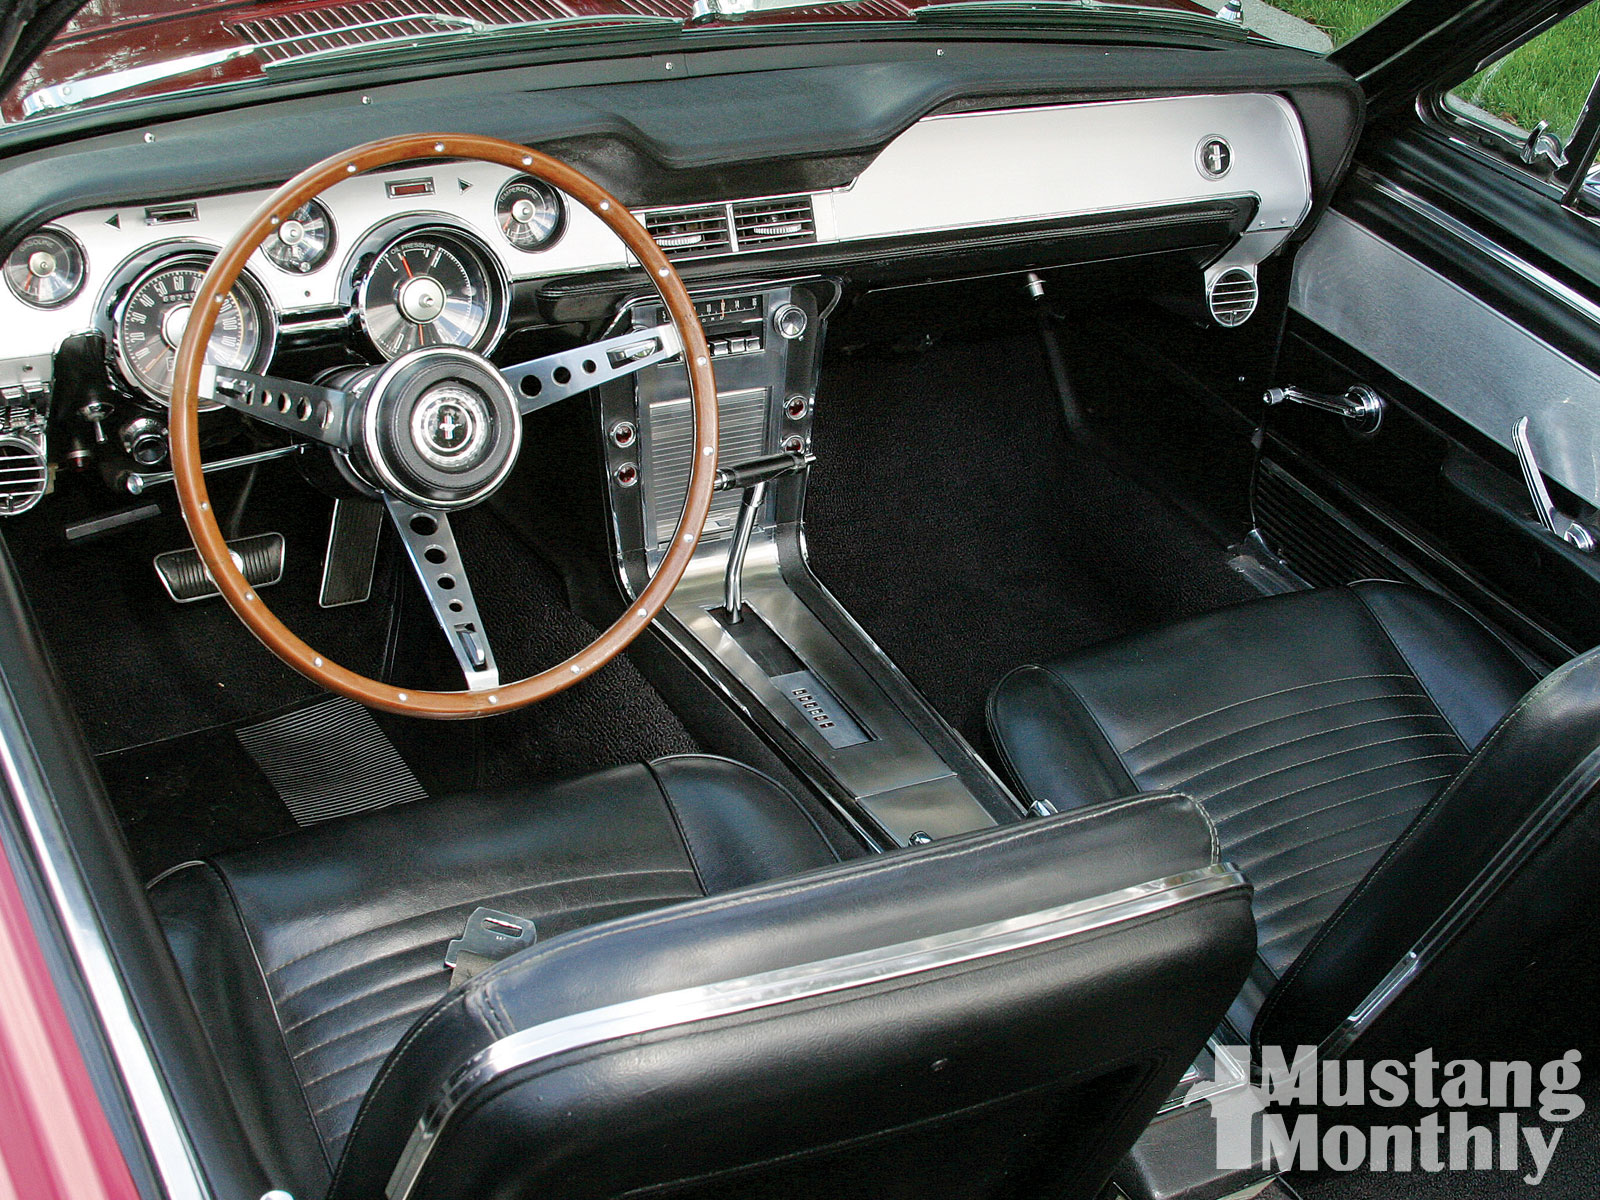 Ford Mustang Convertible Interior